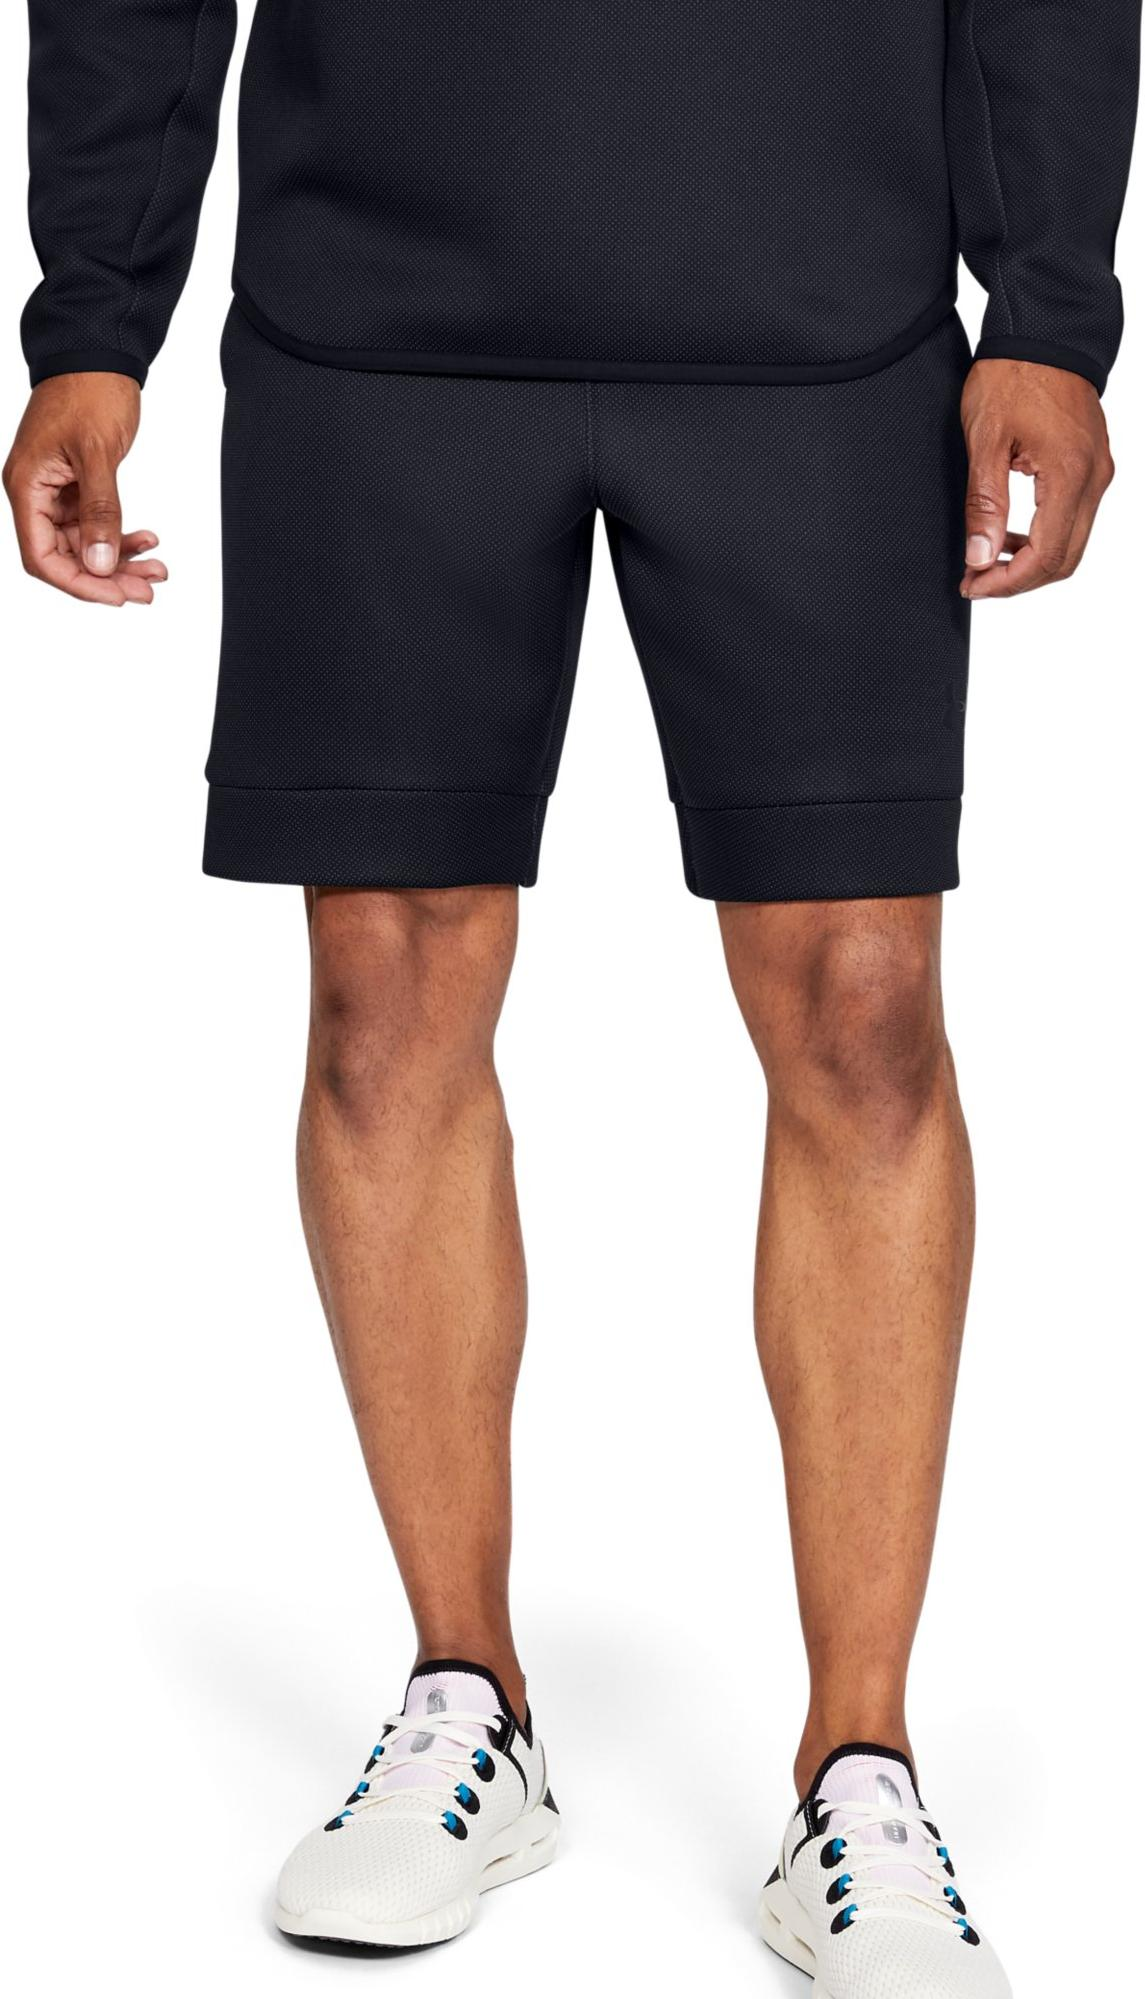 Šortky Under Armour UA /MOVE SHORTS